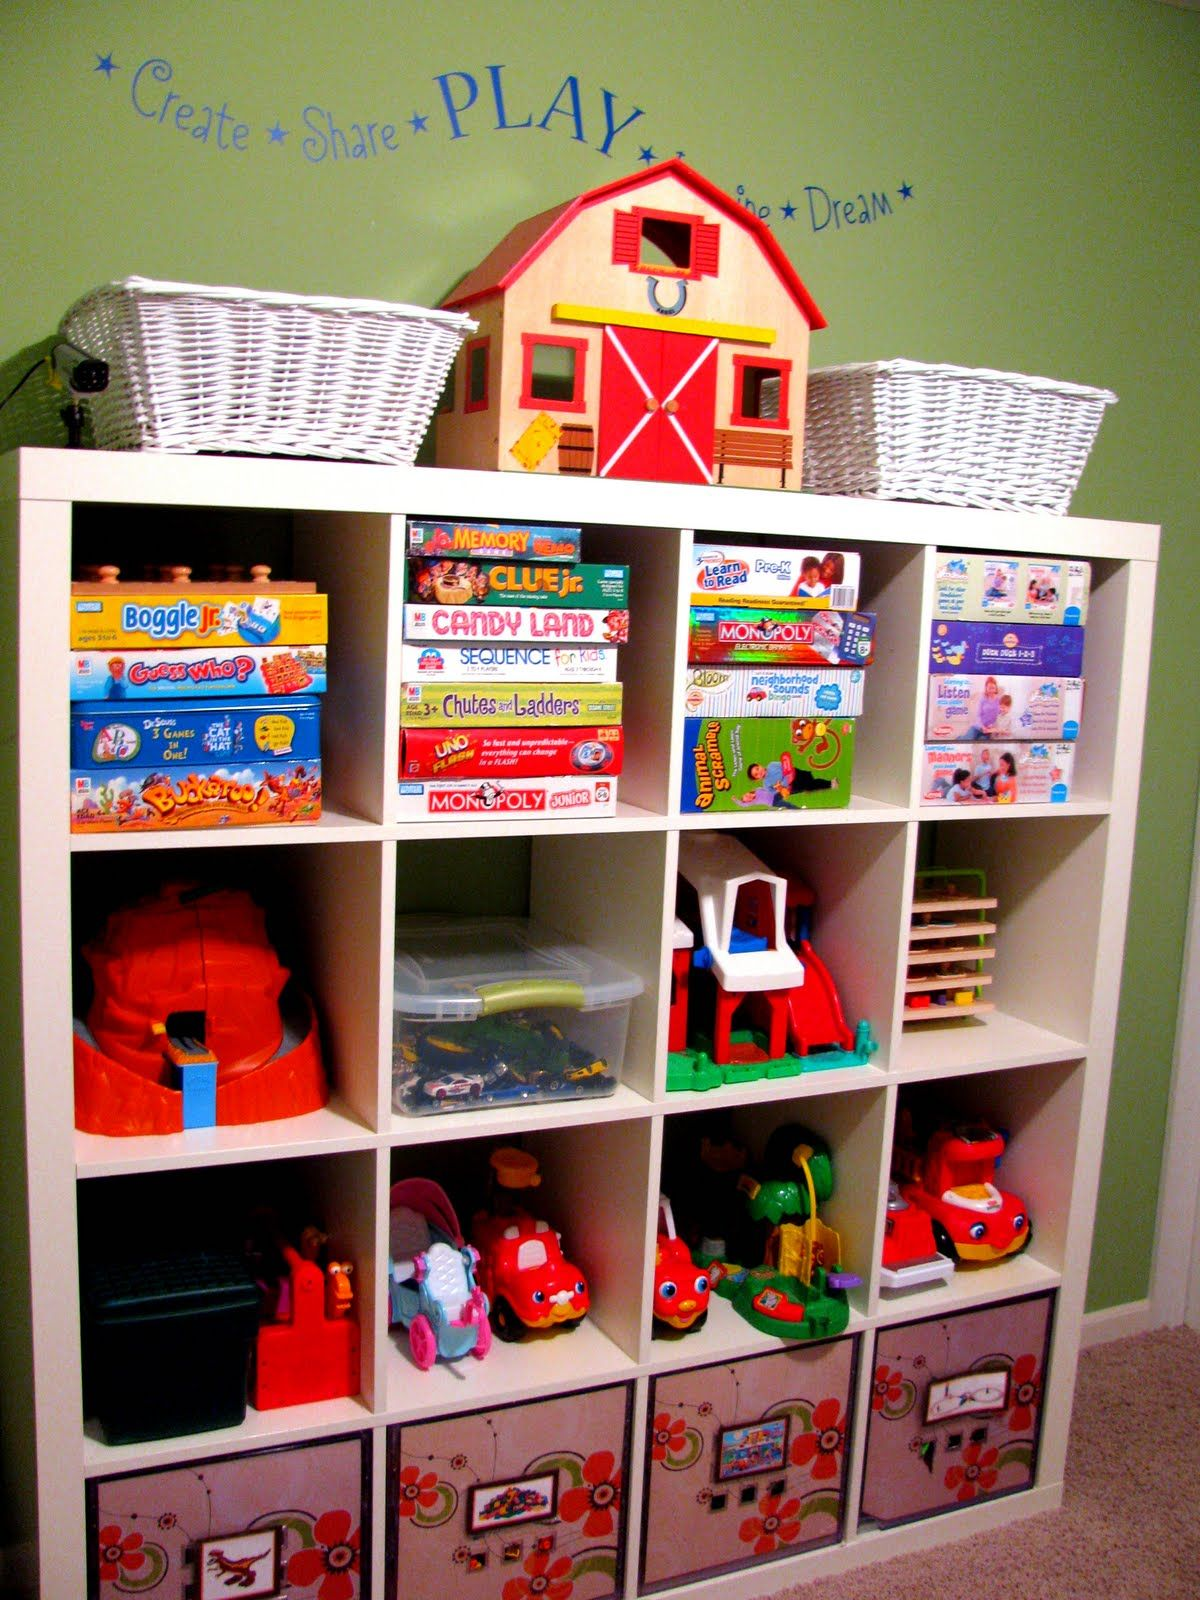 iheart organizing march featured space kids perfect play haven play room idea for the boys - Kids Room Storage Bins